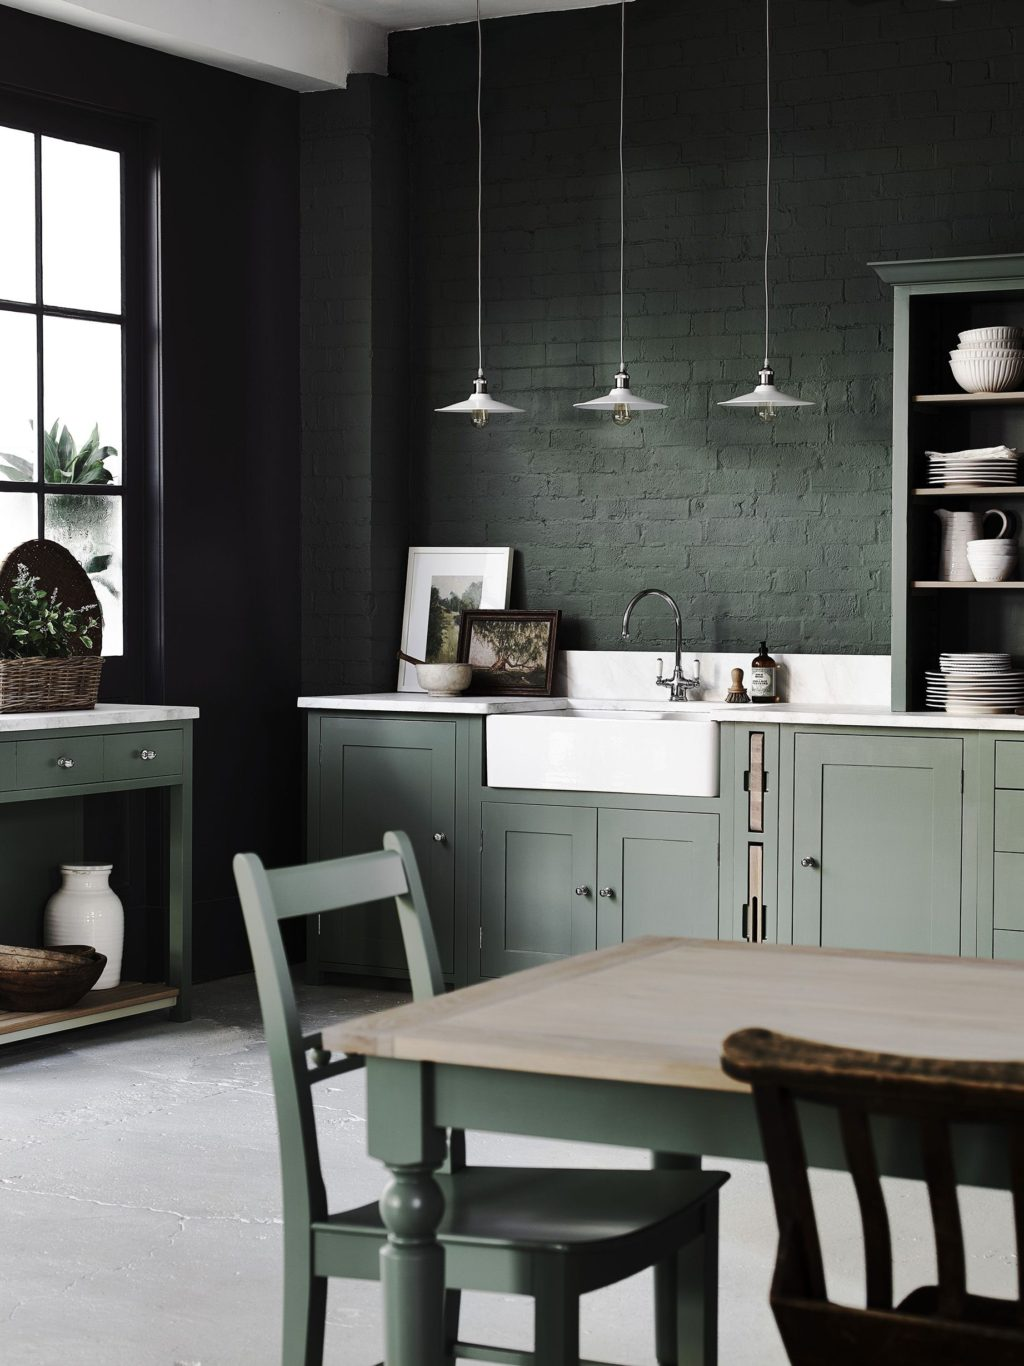 dark-paints.-1024x1366 80+ Unusual Kitchen Design Ideas for Small Spaces in 2021